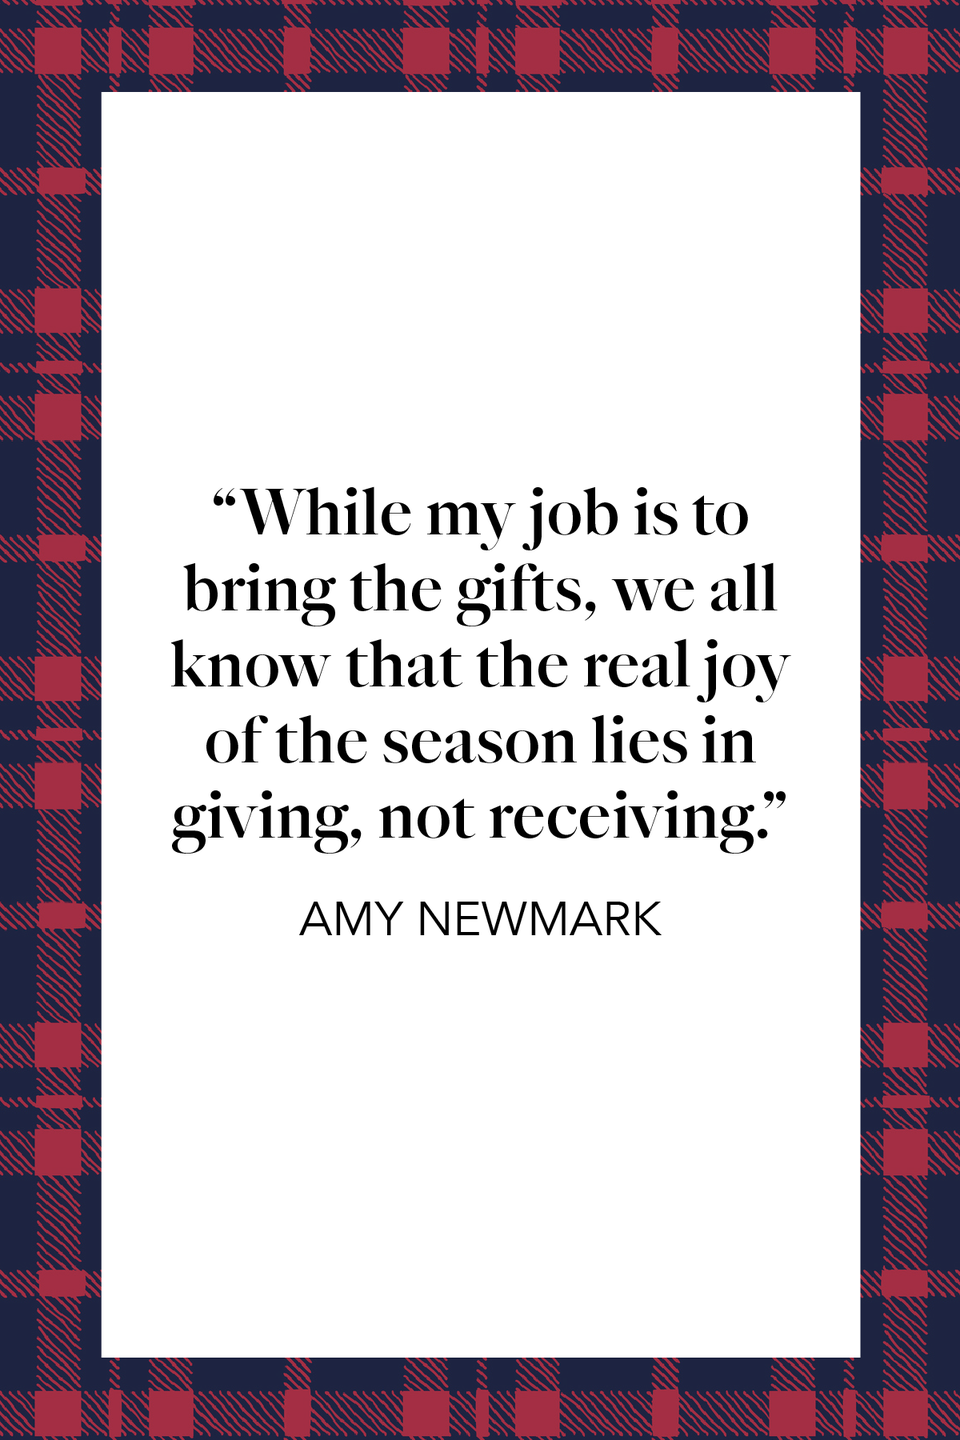 "<p>Writing from the perspective of Santa Claus, Amy Newmark talks about the true gifts at Christmas in her book <em><a href=""https://www.amazon.com/Chicken-Soup-Soul-Christmas-Holiday/dp/1611599539?tag=syn-yahoo-20&ascsubtag=%5Bartid%7C10072.g.34536312%5Bsrc%7Cyahoo-us"" rel=""nofollow noopener"" target=""_blank"" data-ylk=""slk:Chicken Soup for the Soul Merry Christmas 101 Joyous Holiday"" class=""link rapid-noclick-resp"">Chicken Soup for the Soul Merry Christmas 101 Joyous Holiday</a></em>, ""While my job is to bring the gifts, we all know that the real joy of the season lies in <em>giving</em>, not receiving.<br></p>"